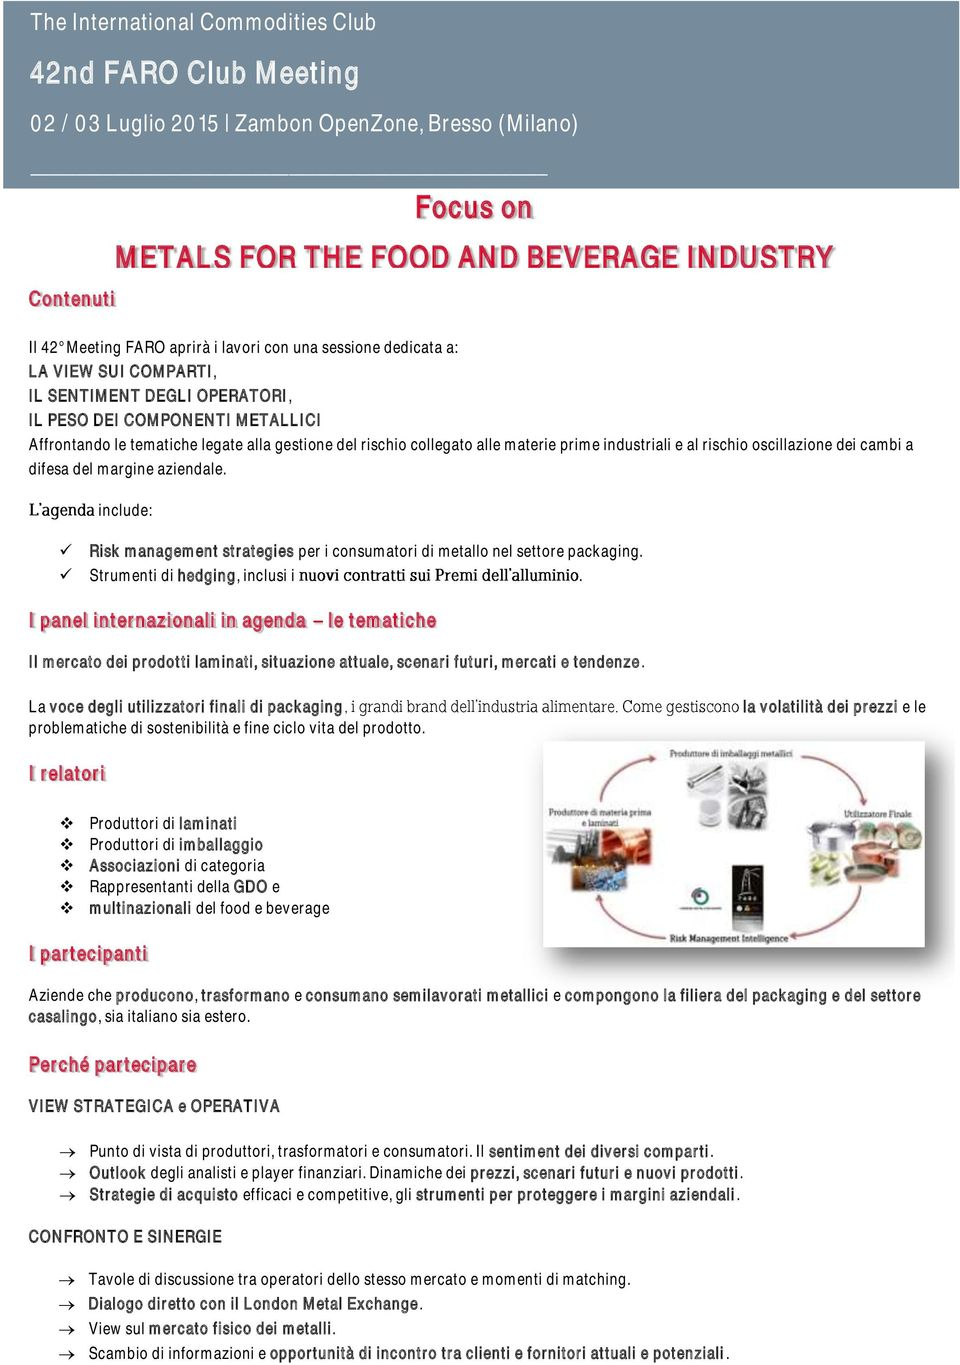 dei cambi a difesa del margine aziendale. include: Focus on METALS FOR THE FOOD AND BEVERAGE INDUSTRY Risk management strategies per i consumatori di metallo nel settore packaging.